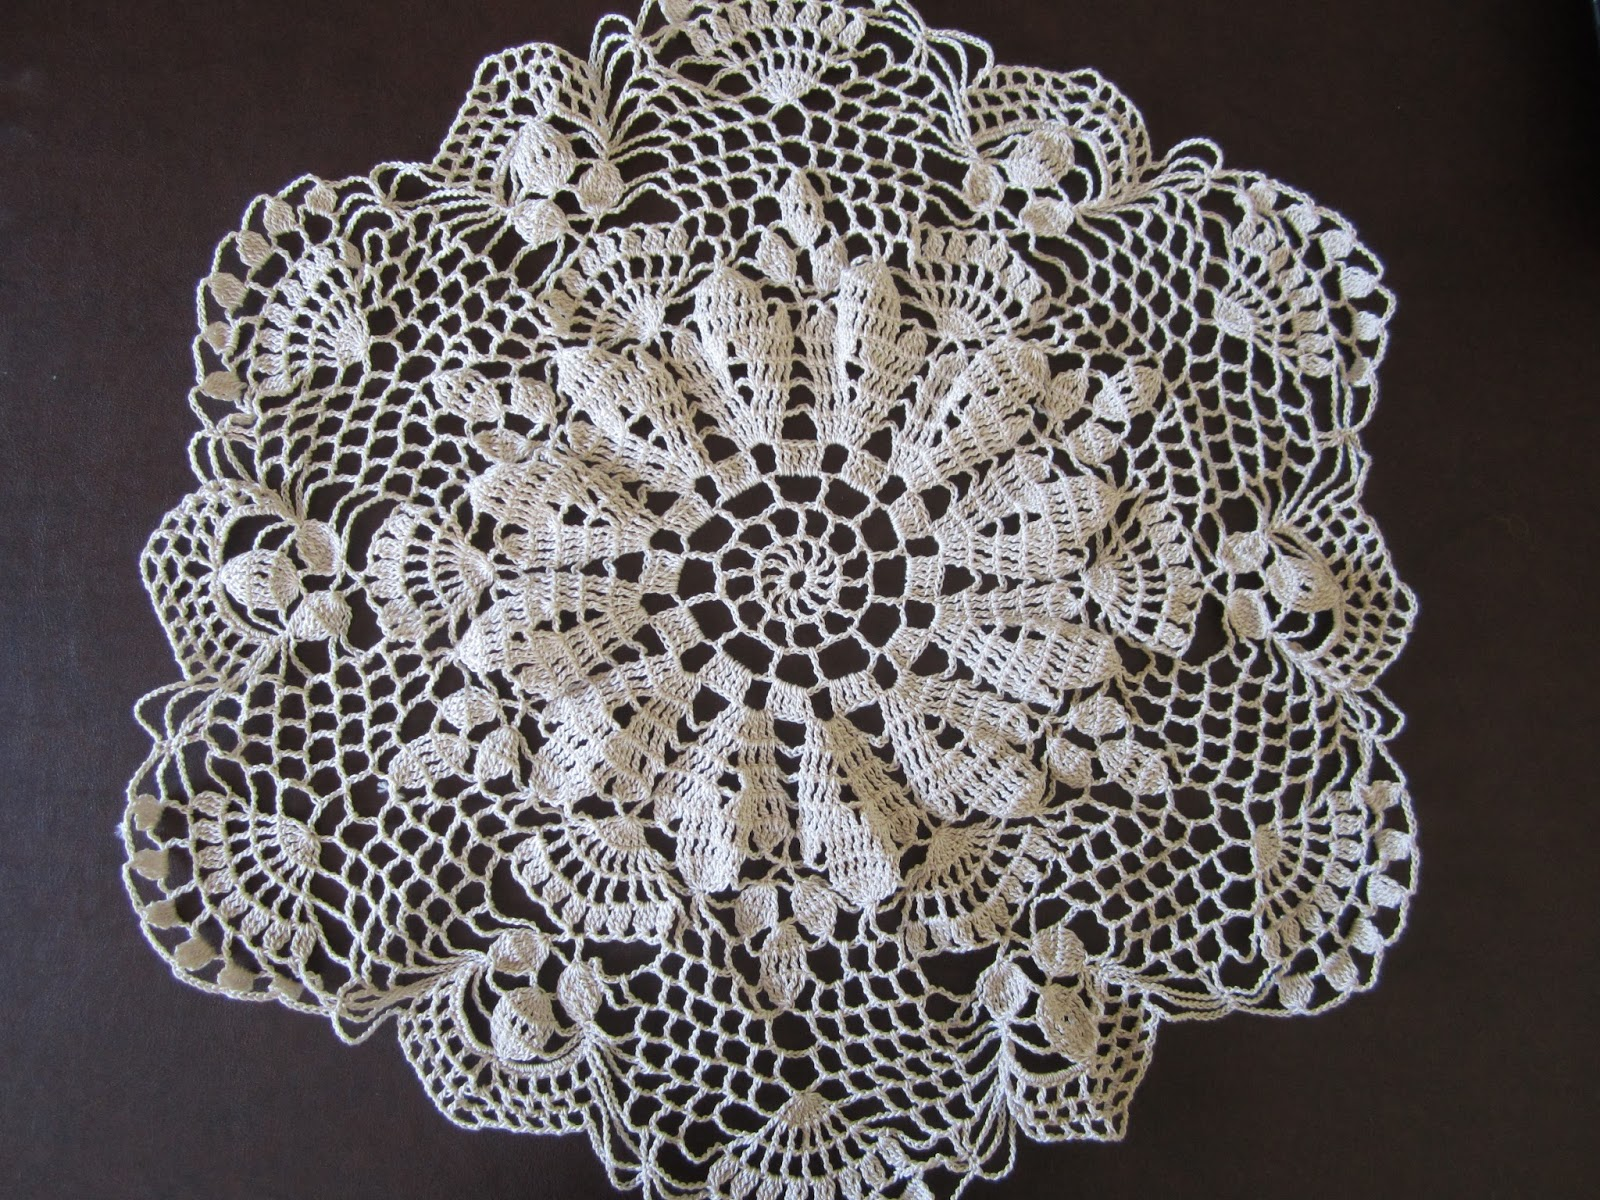 Crochet Patterns Vintage Doilies : Lacy Crochet: My Shortcut to Blocking Doilies and Free ...